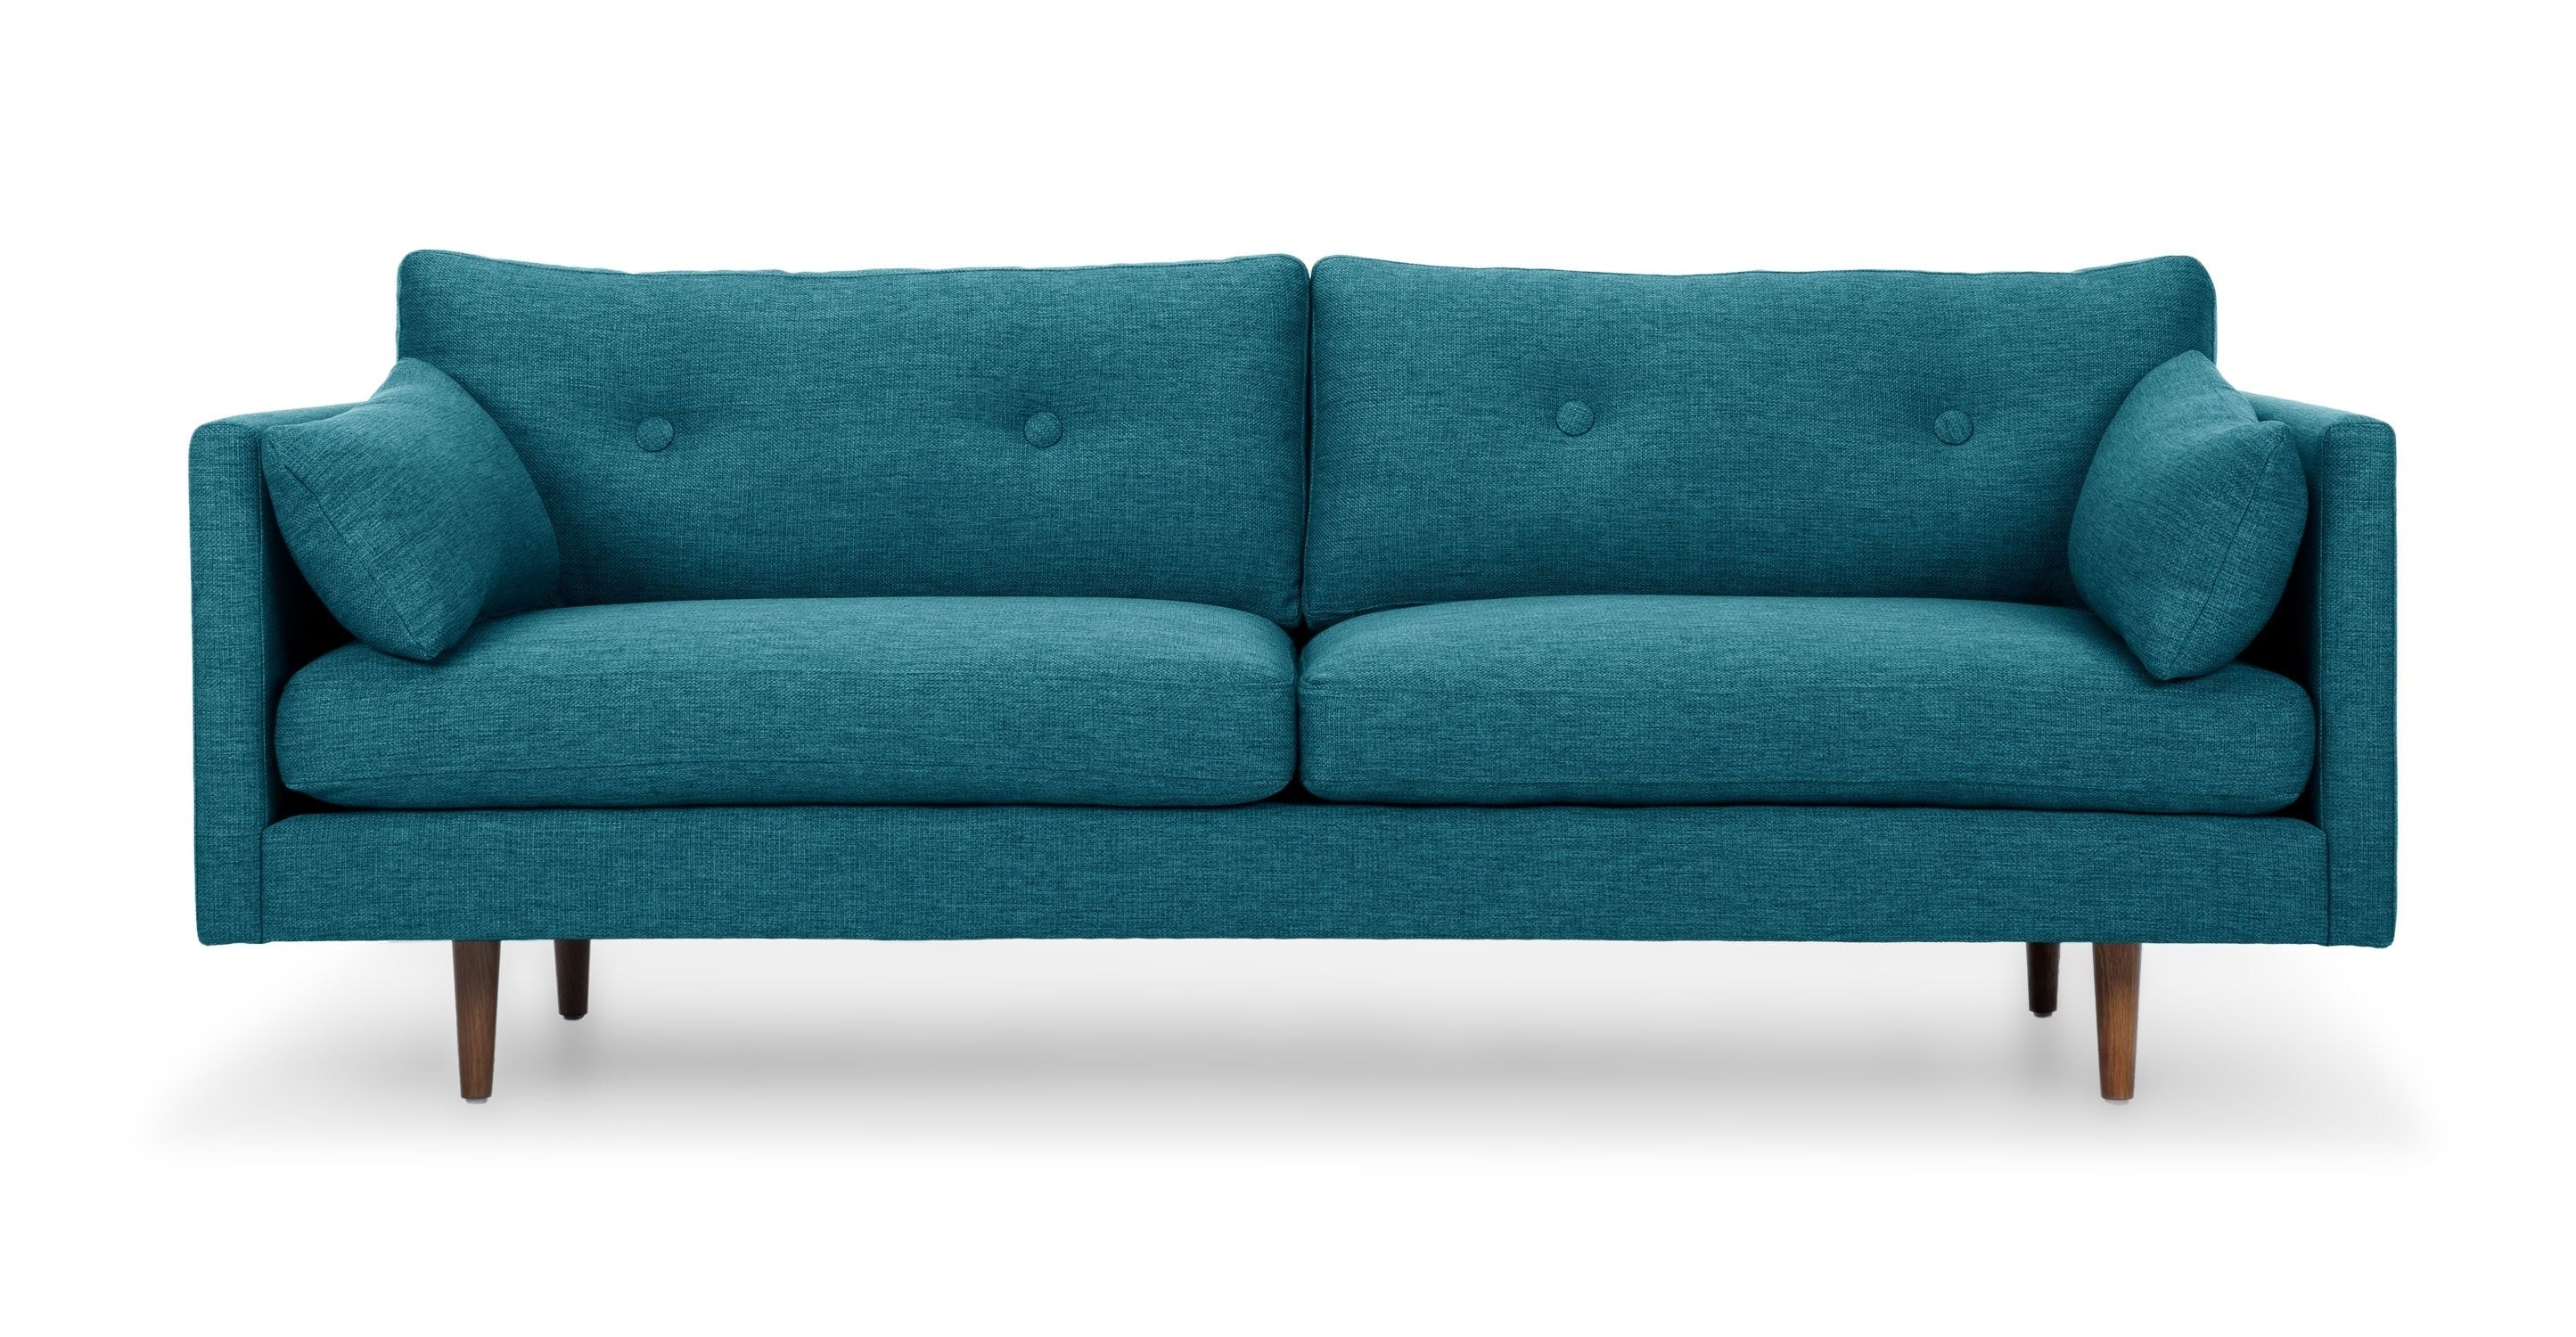 Turquoise Tufted Sofa, 3 Seat, Solid Wood Legs | Article Anton Regarding Turquoise Sofas (View 5 of 10)